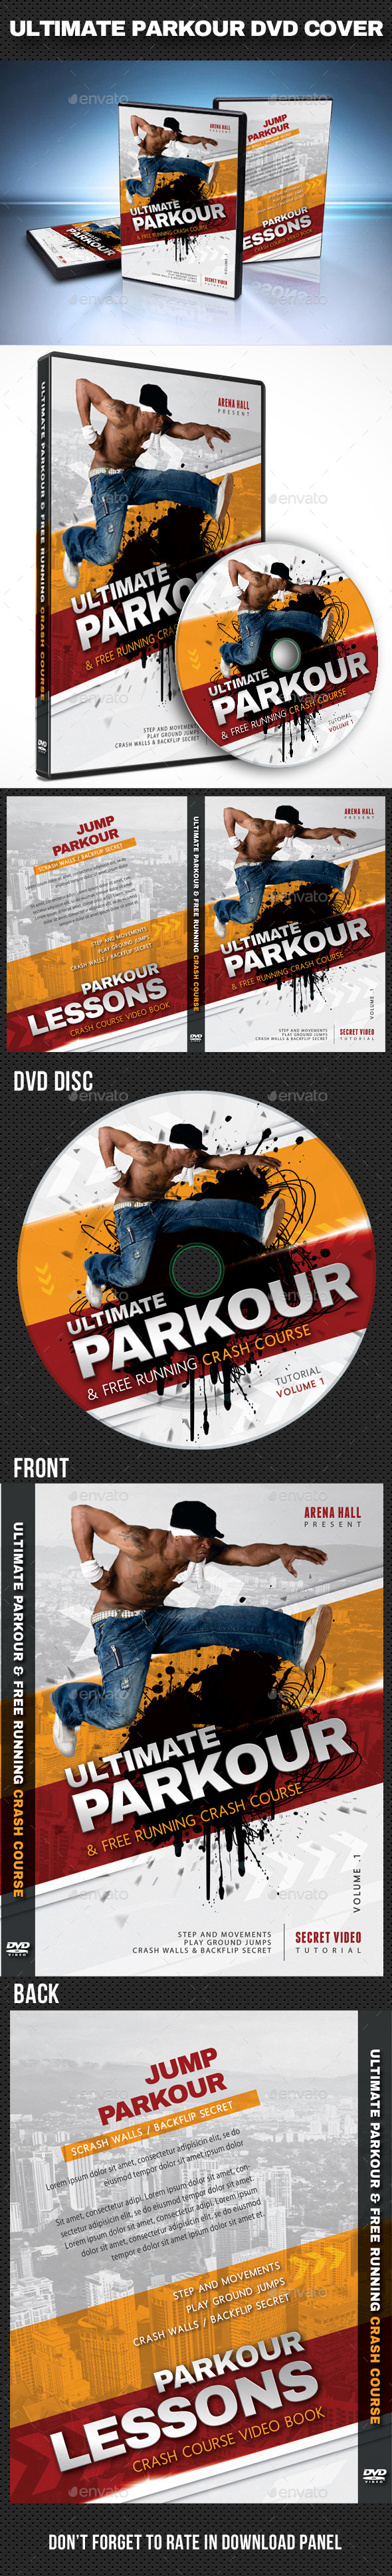 GraphicRiver Ultimate Parkour DVD Cover Template 10739648